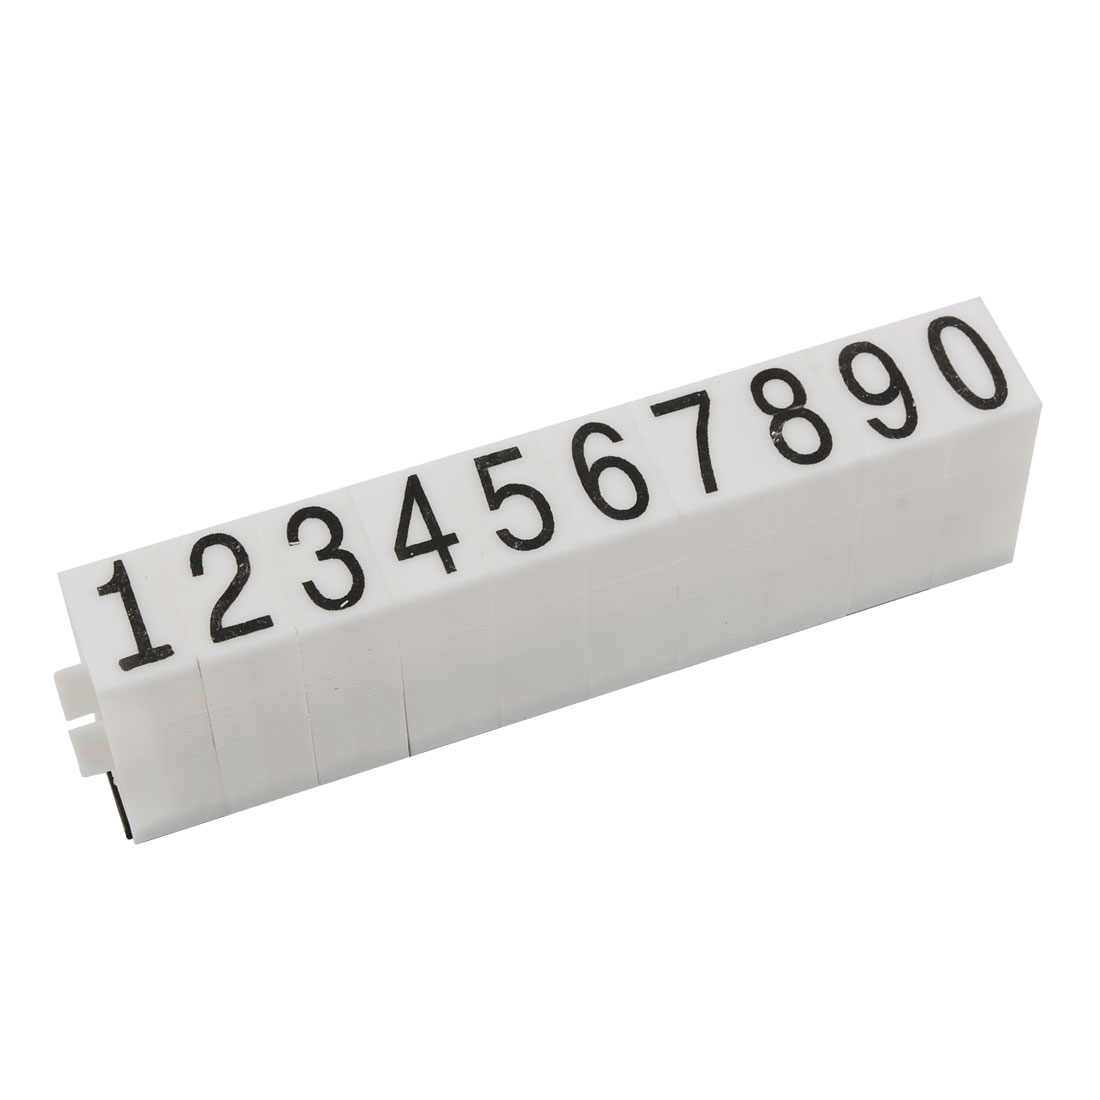 Office Detachable 16mm x 11mm 0-9 Digits Arabic Numerals Stamp